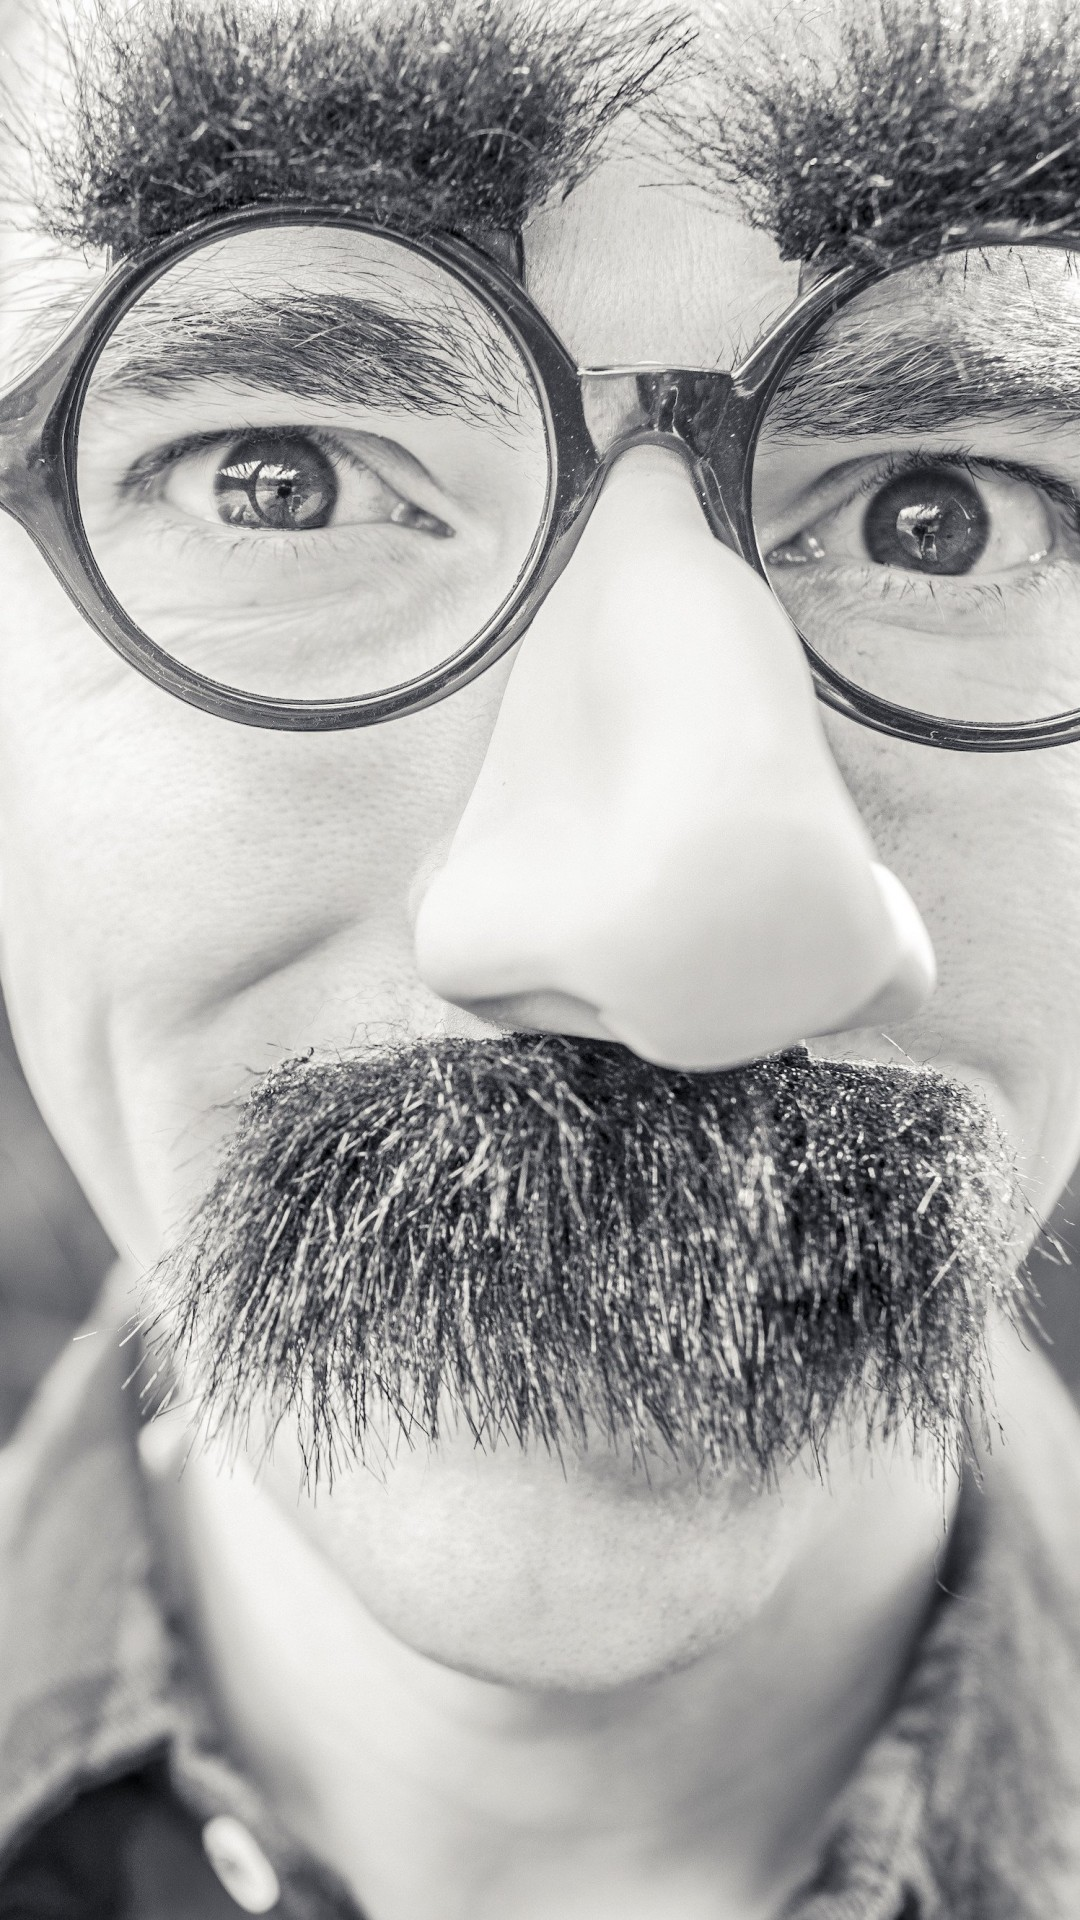 Groucho Glasses Man Wallpaper for Google Nexus 5X